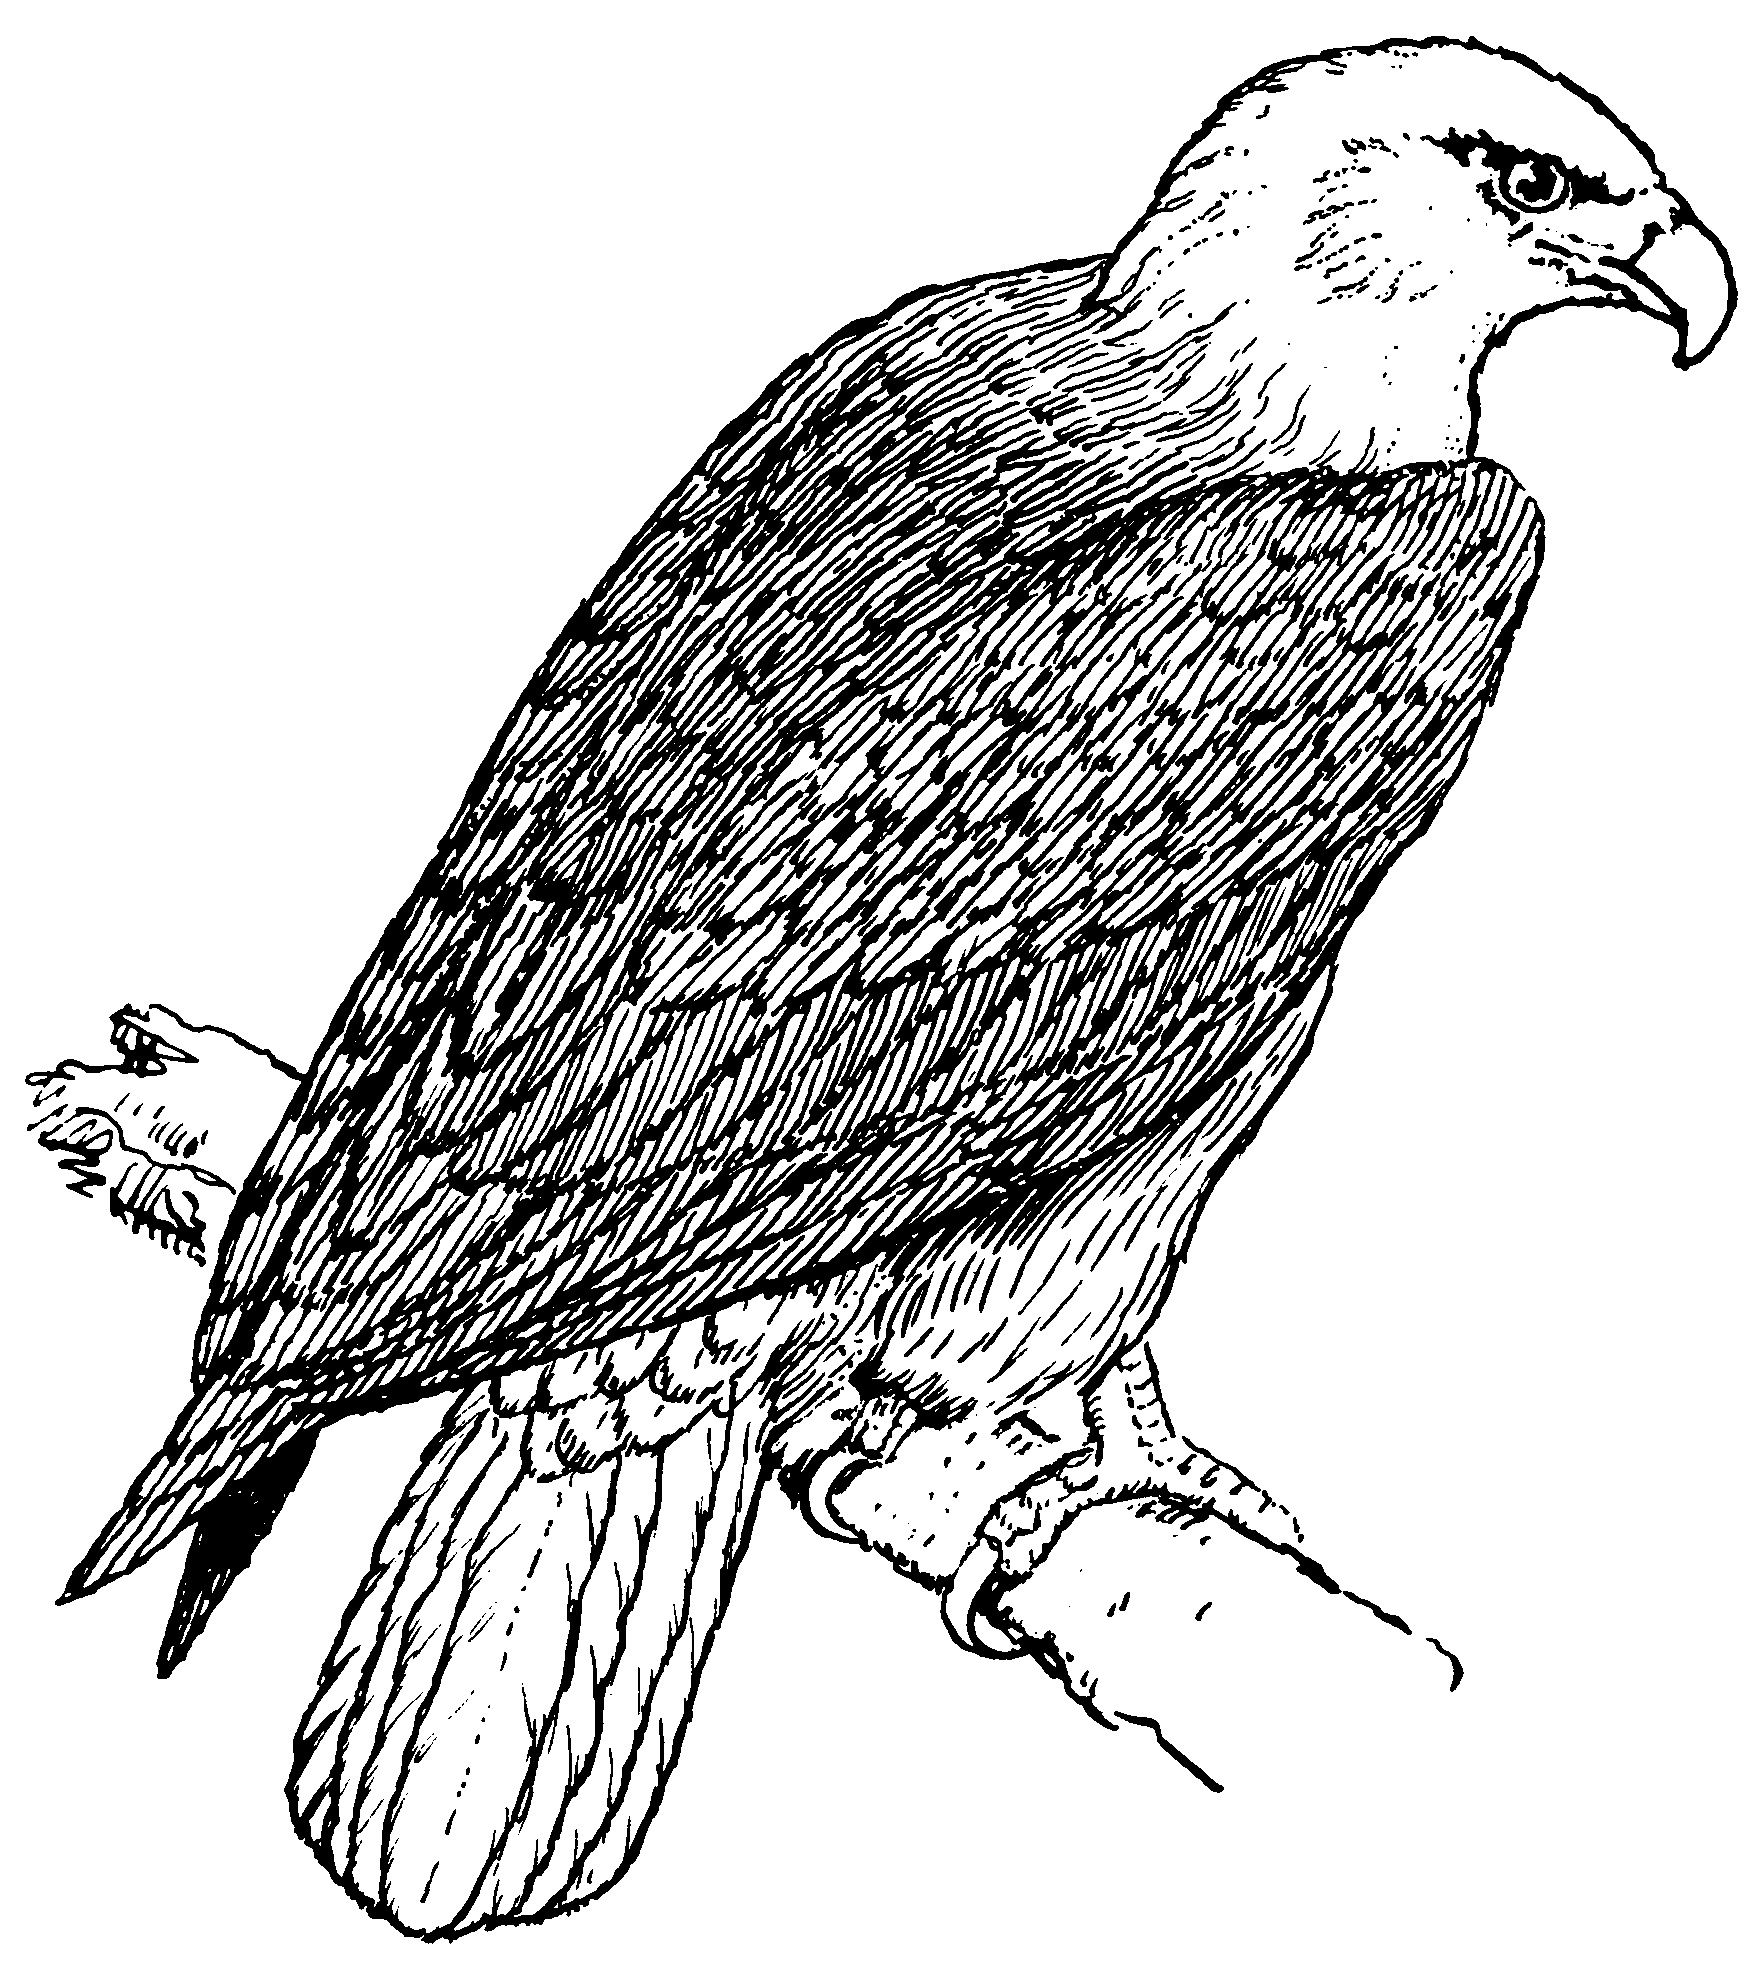 Coloring Book Eagle With Images Bird Coloring Pages Coloring Pages For Kids Mandala Coloring Pages